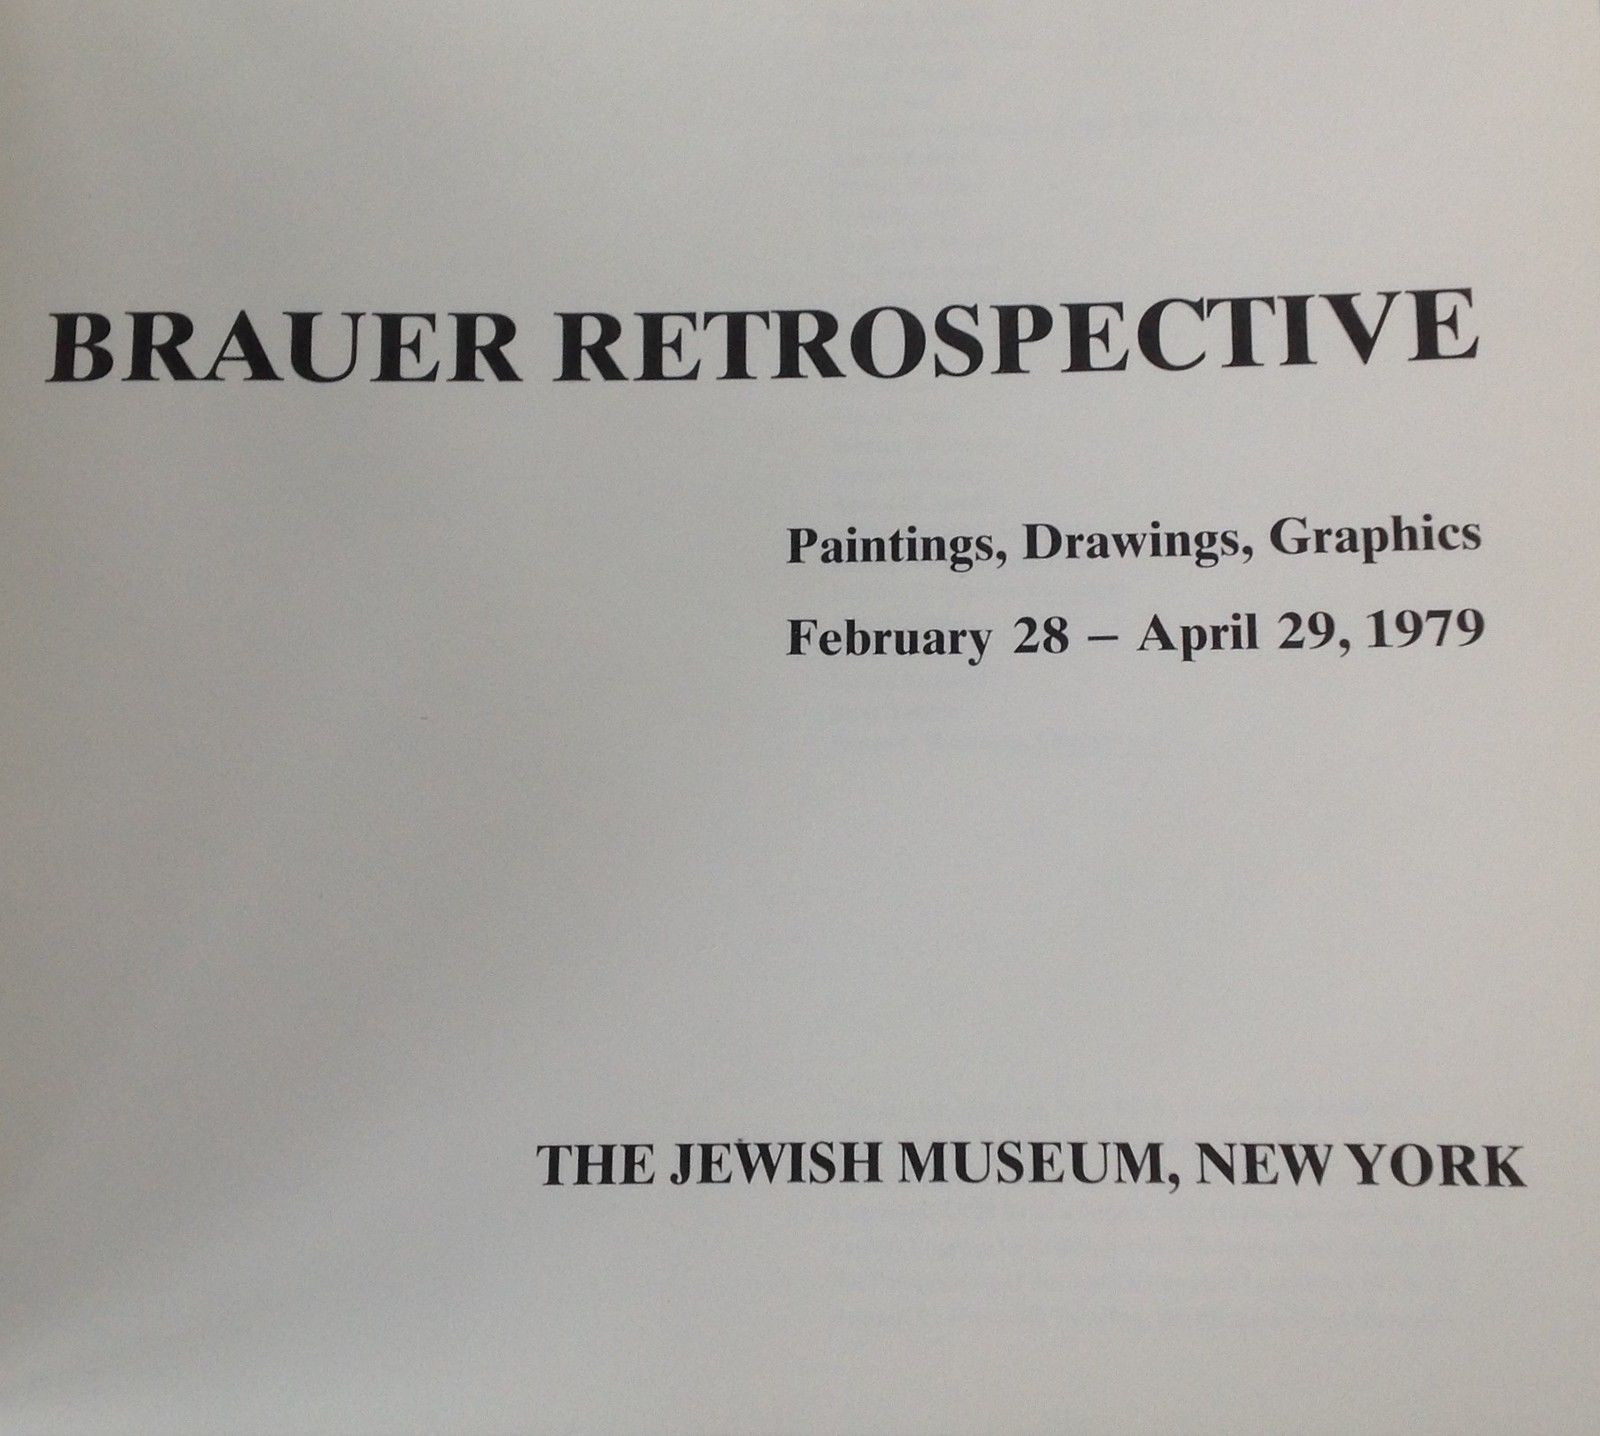 Brauer Retrospective Exhibition Paintings Drawings Graphics 1979 1st edition